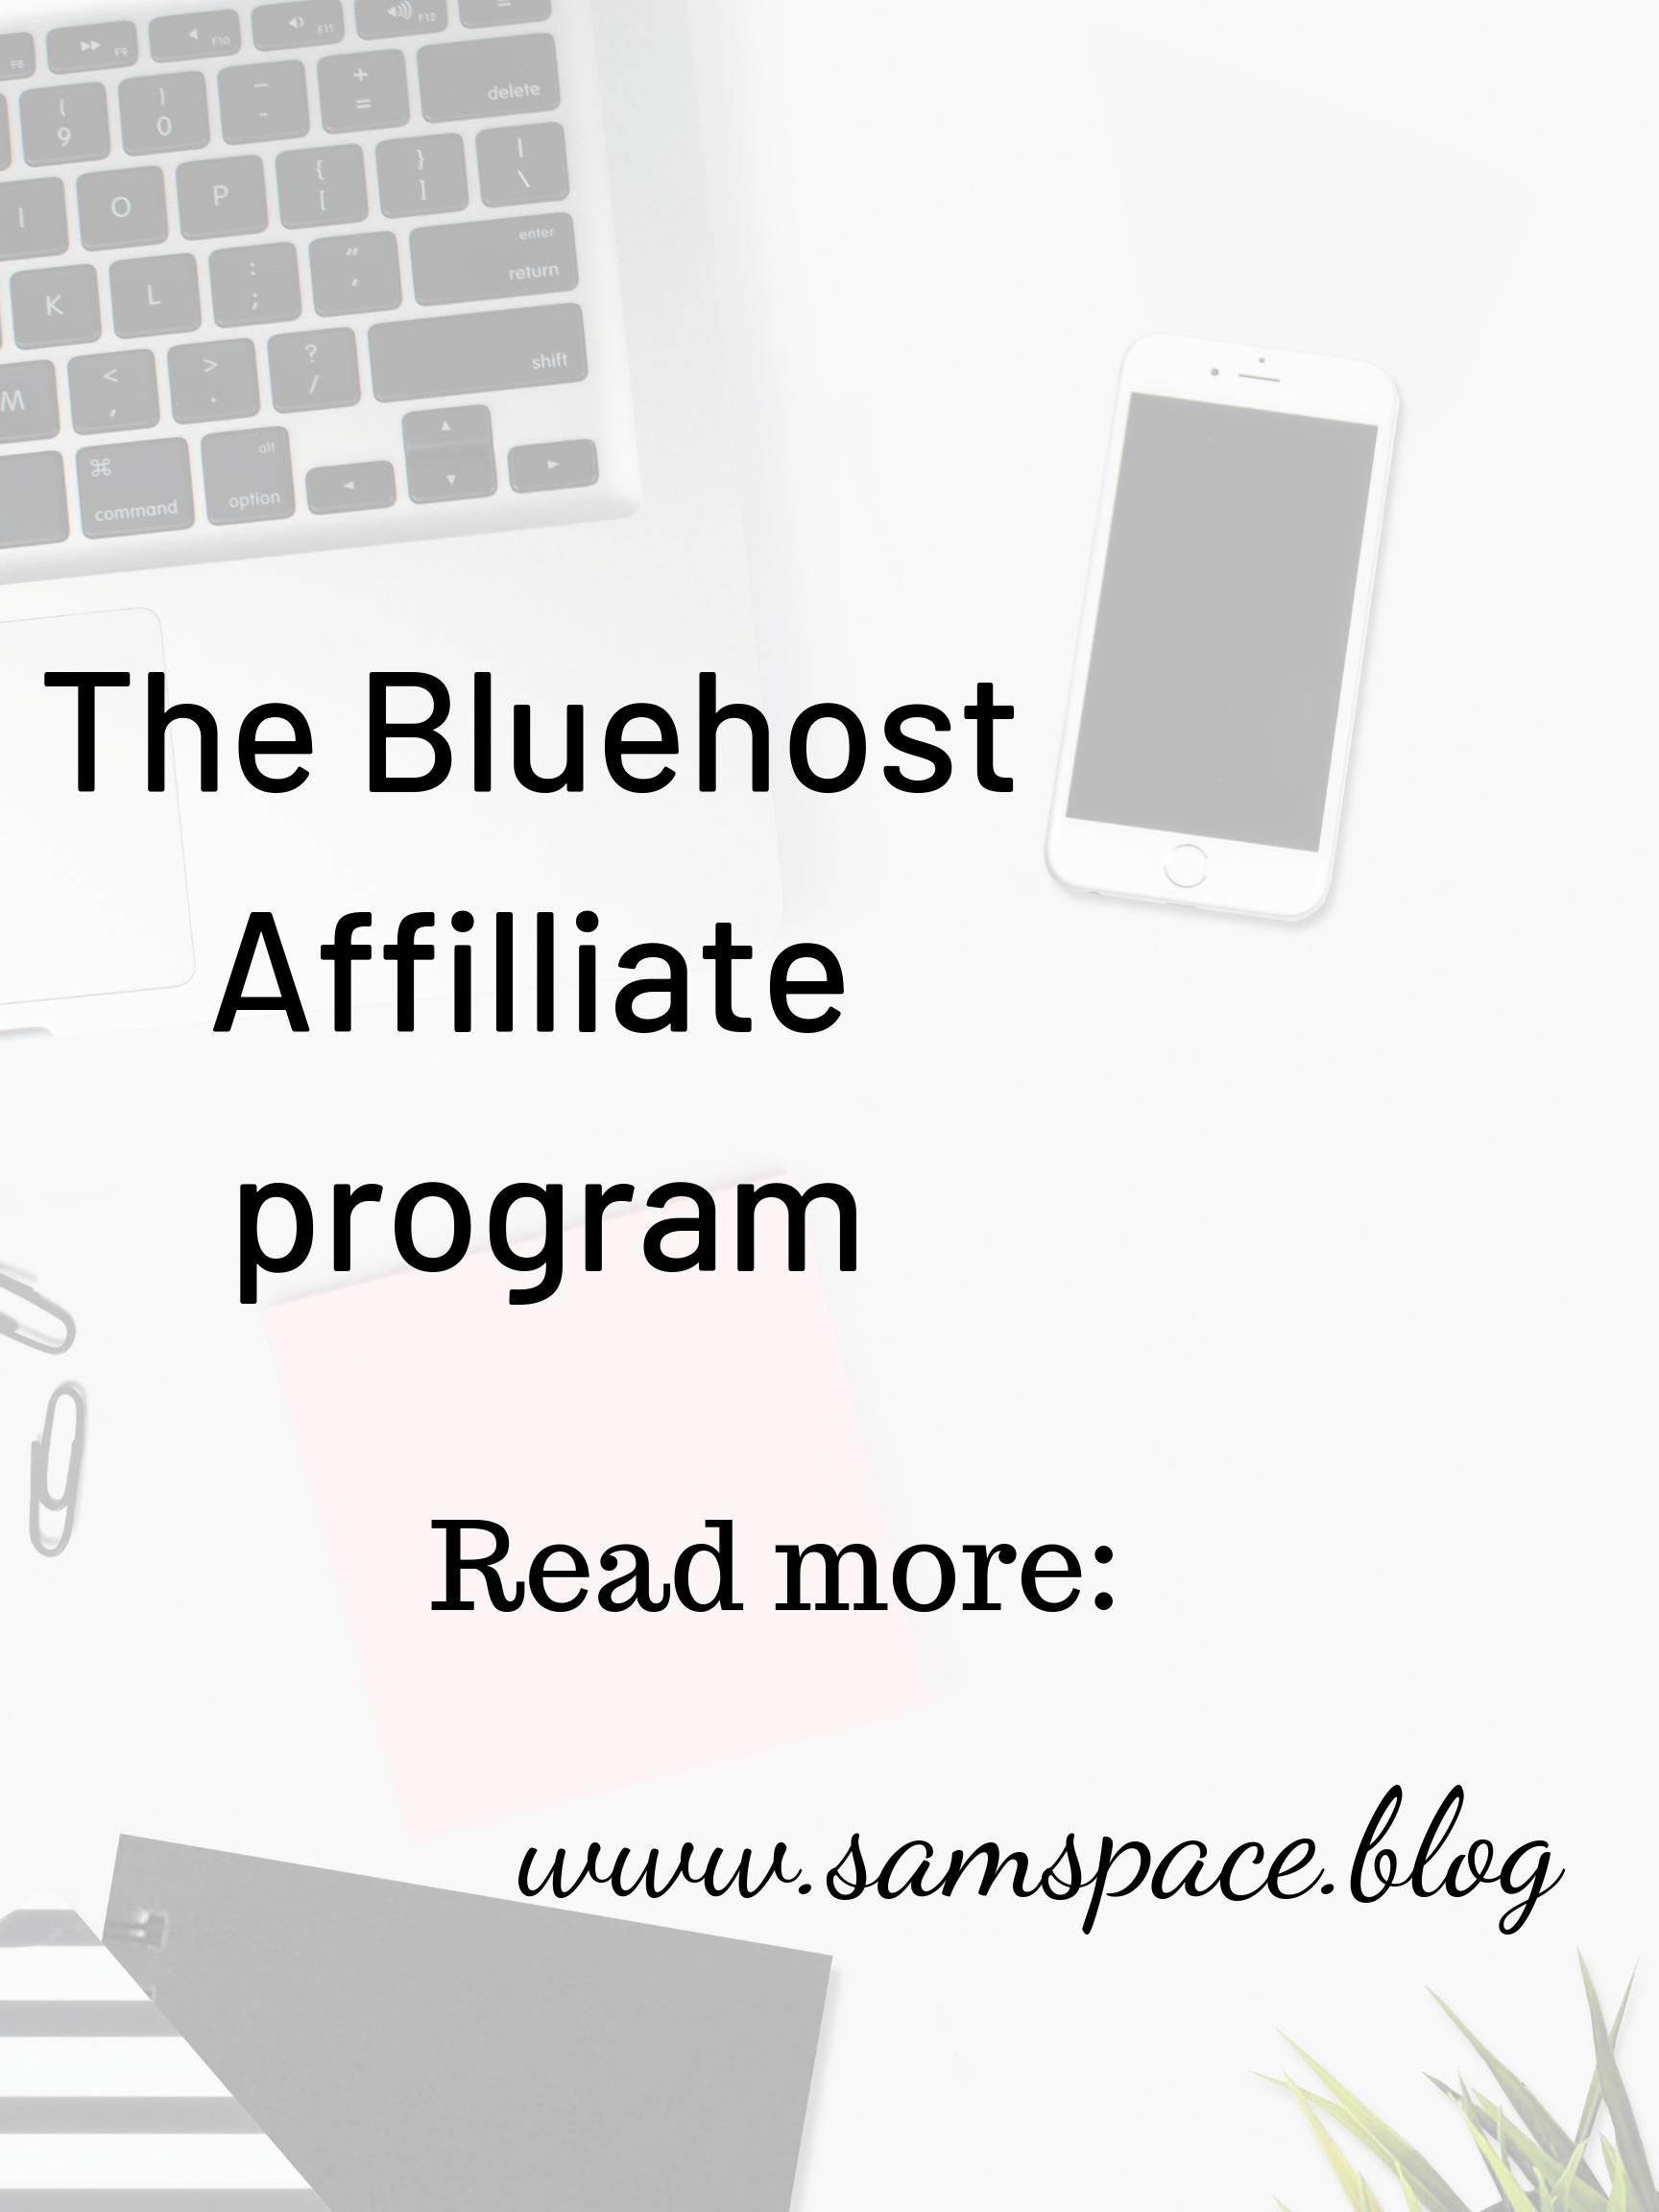 If you're looking for an awesome affiliate program than